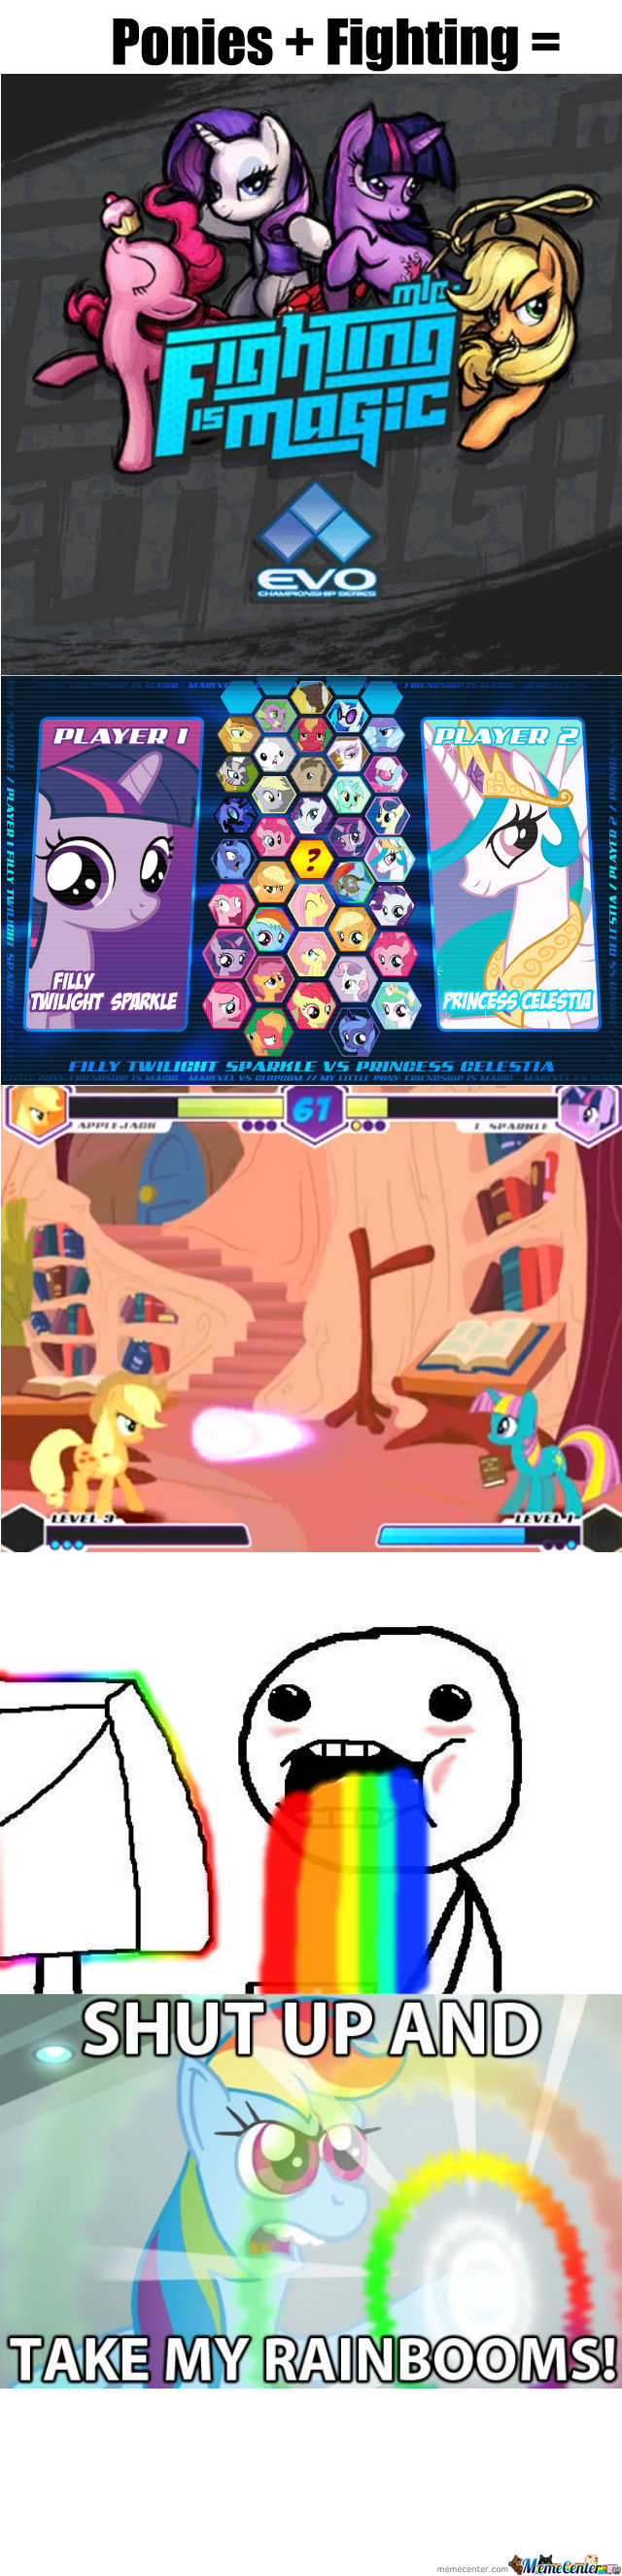 Ponies + Fighting = Awesome!!